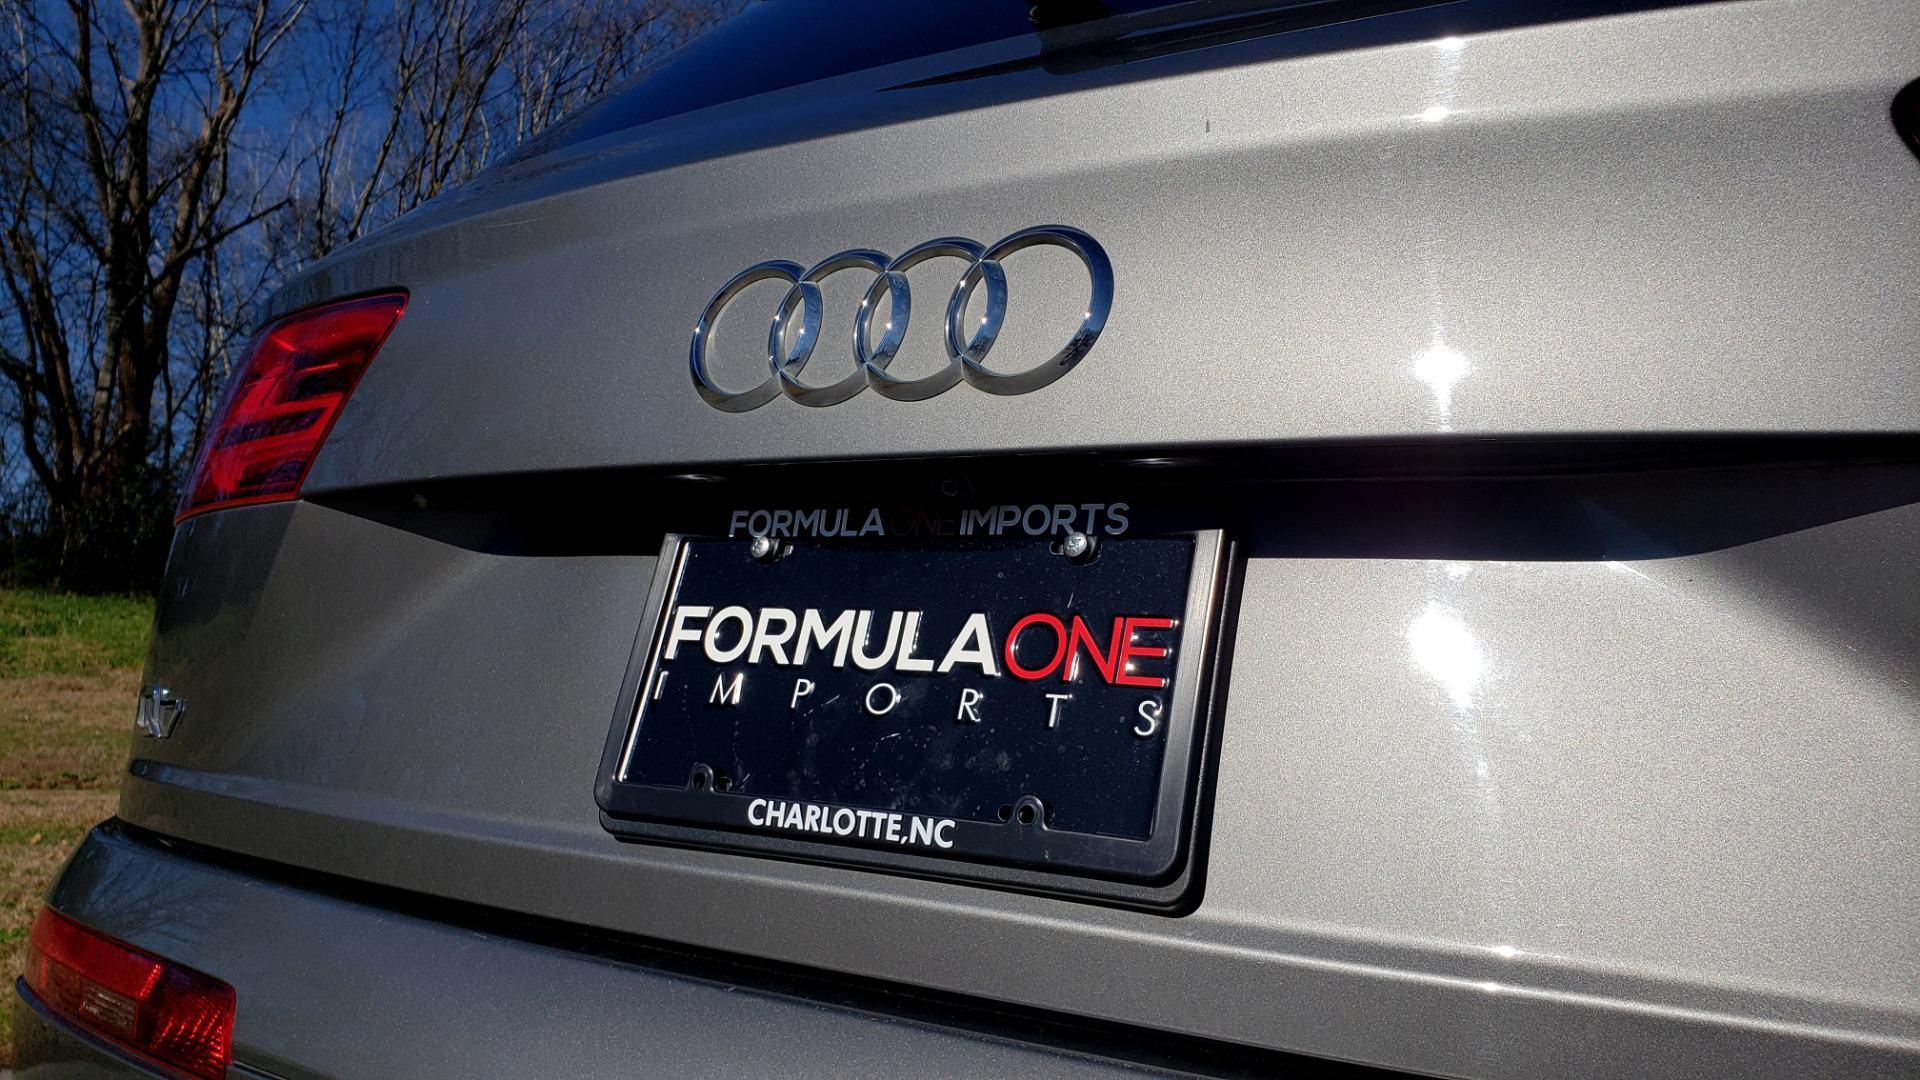 Used 2017 Audi Q7 PREMIUM PLUS / 2.0T TIPTRONIC / NAV / PANO-ROOF / 3-ROW / REARVIEW for sale $33,999 at Formula Imports in Charlotte NC 28227 28